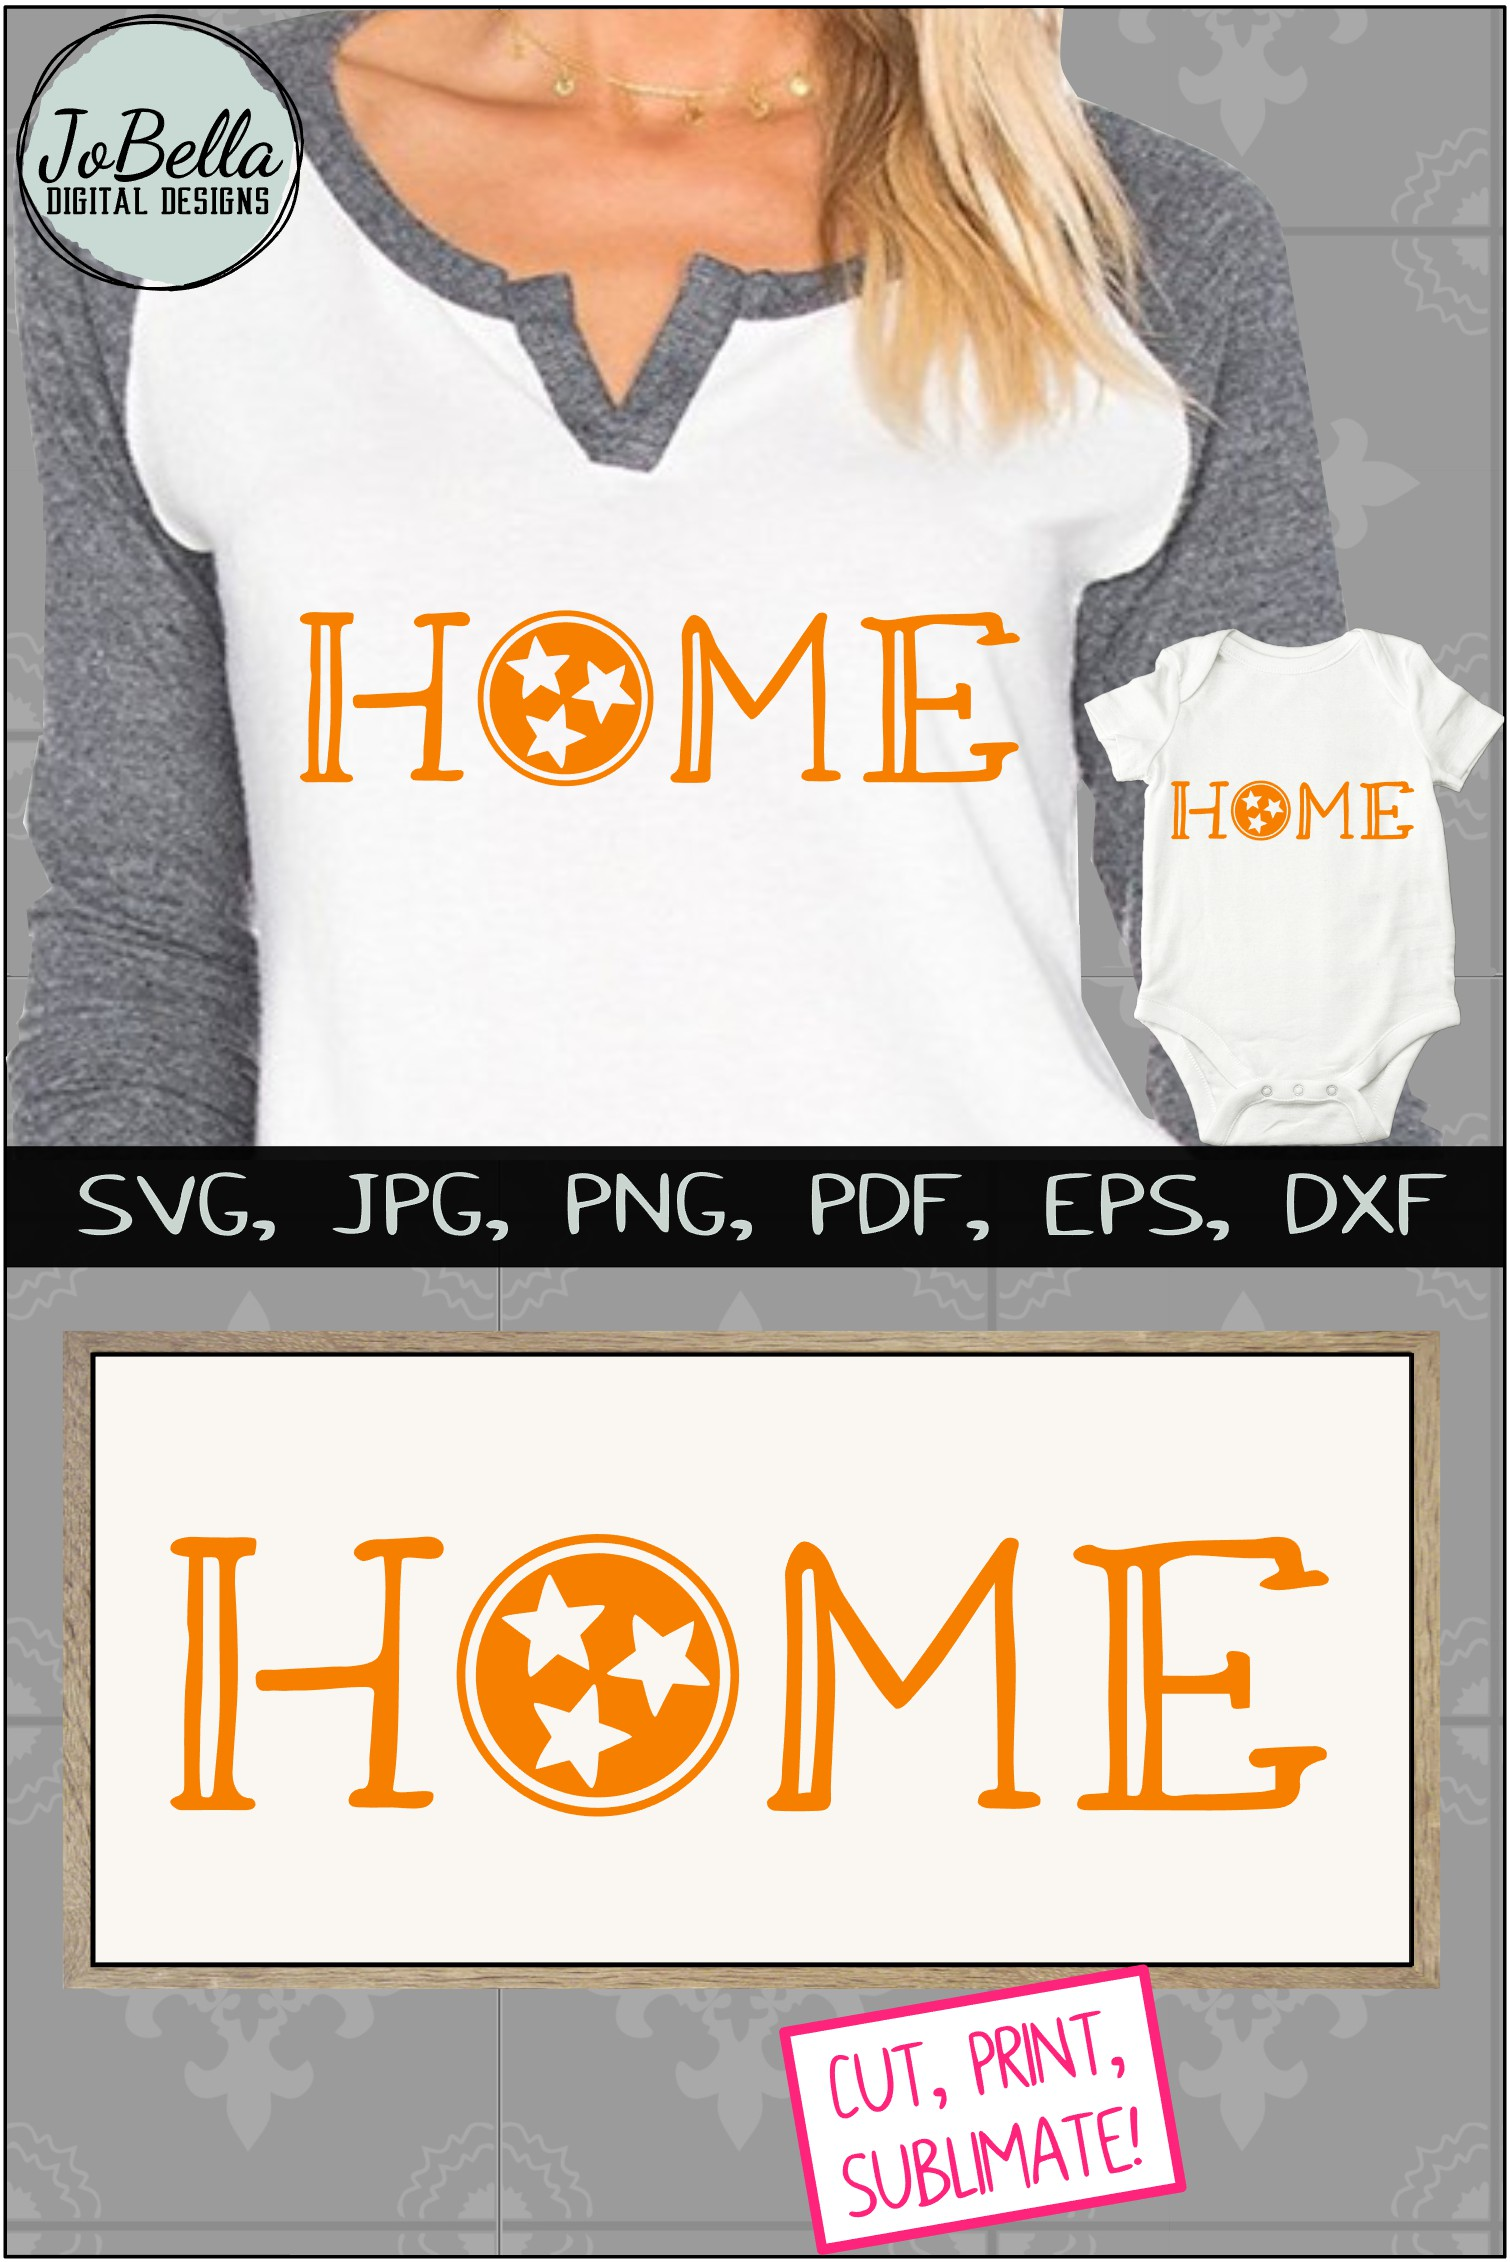 Home with Tennessee TriStar SVG, Sublimation PNG & Printable example image 5